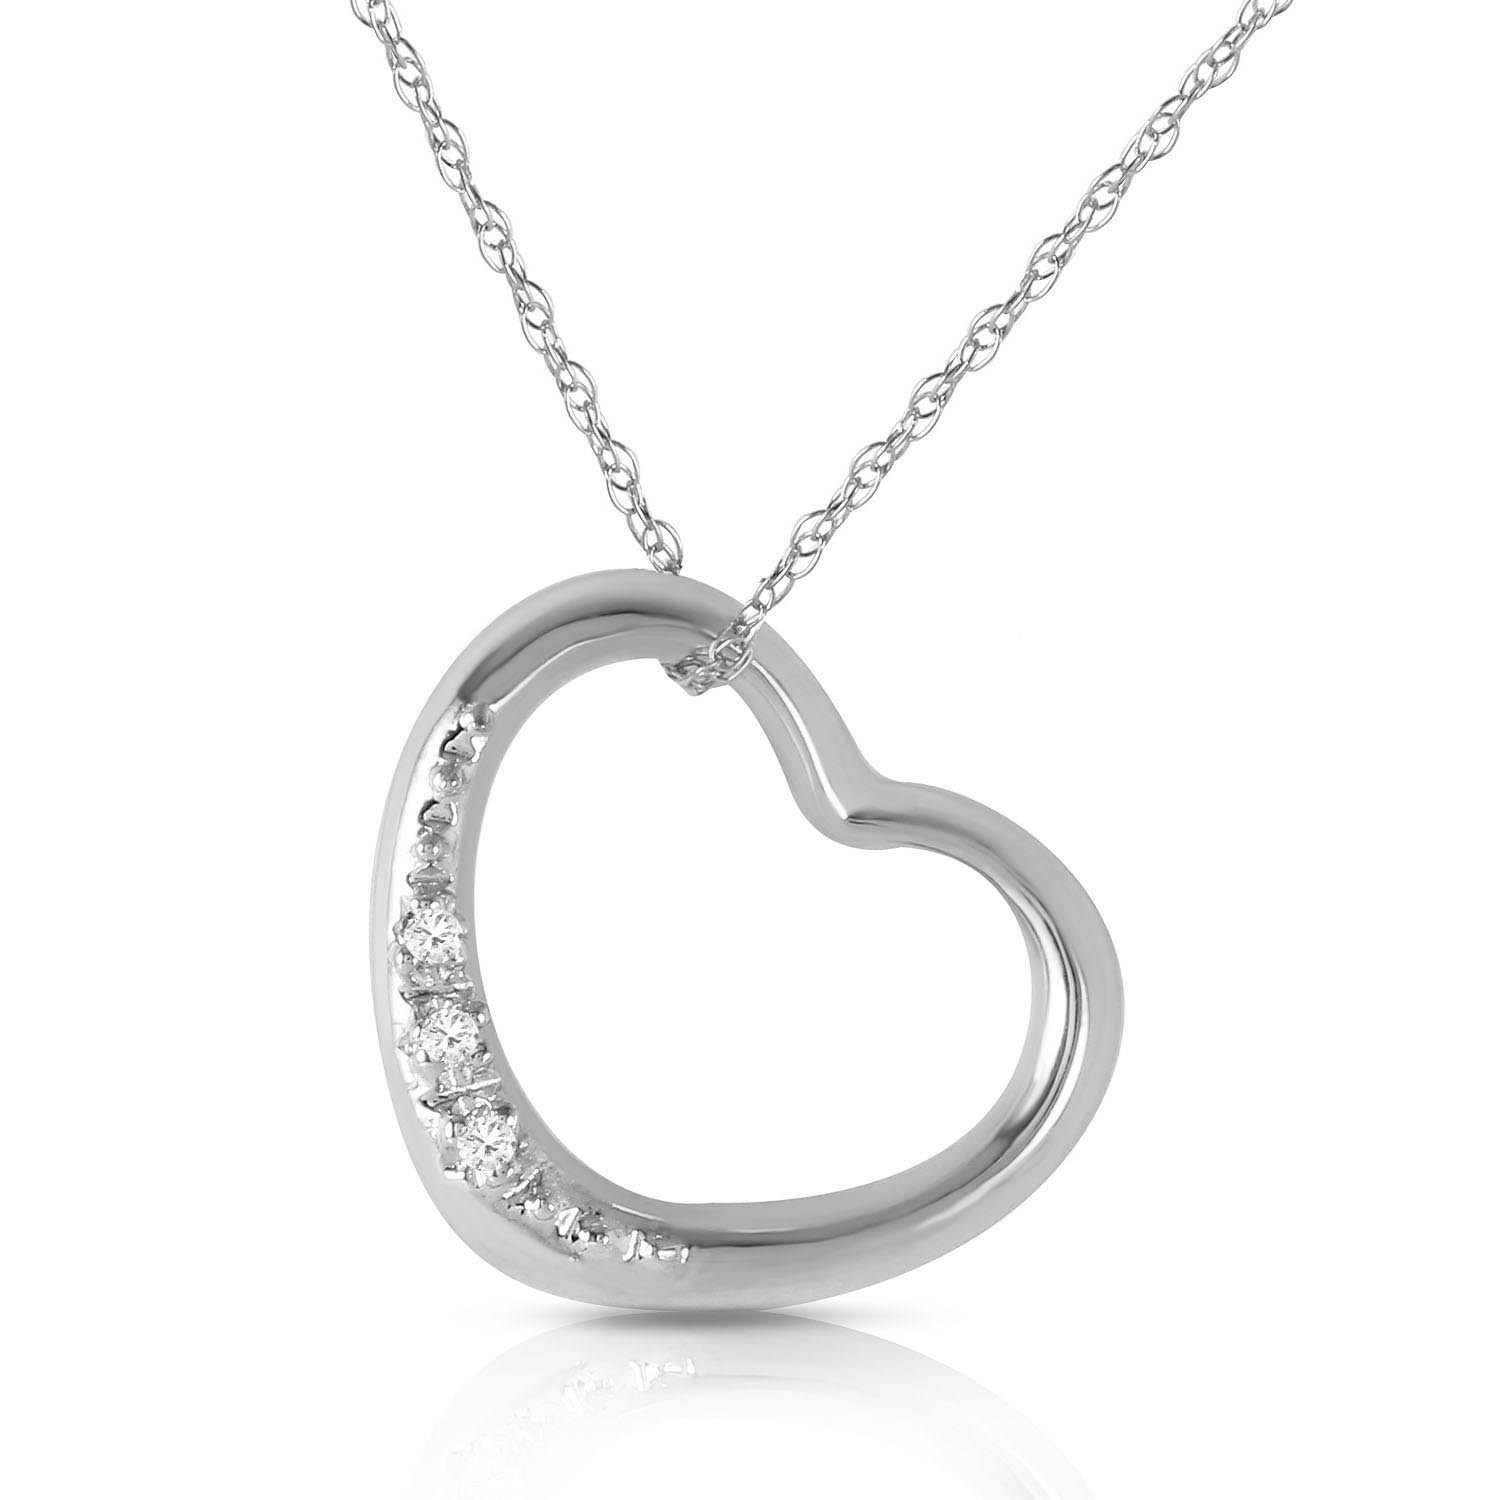 Round Cut Diamond Pendant Necklace 0.03 ctw in 9ct White Gold